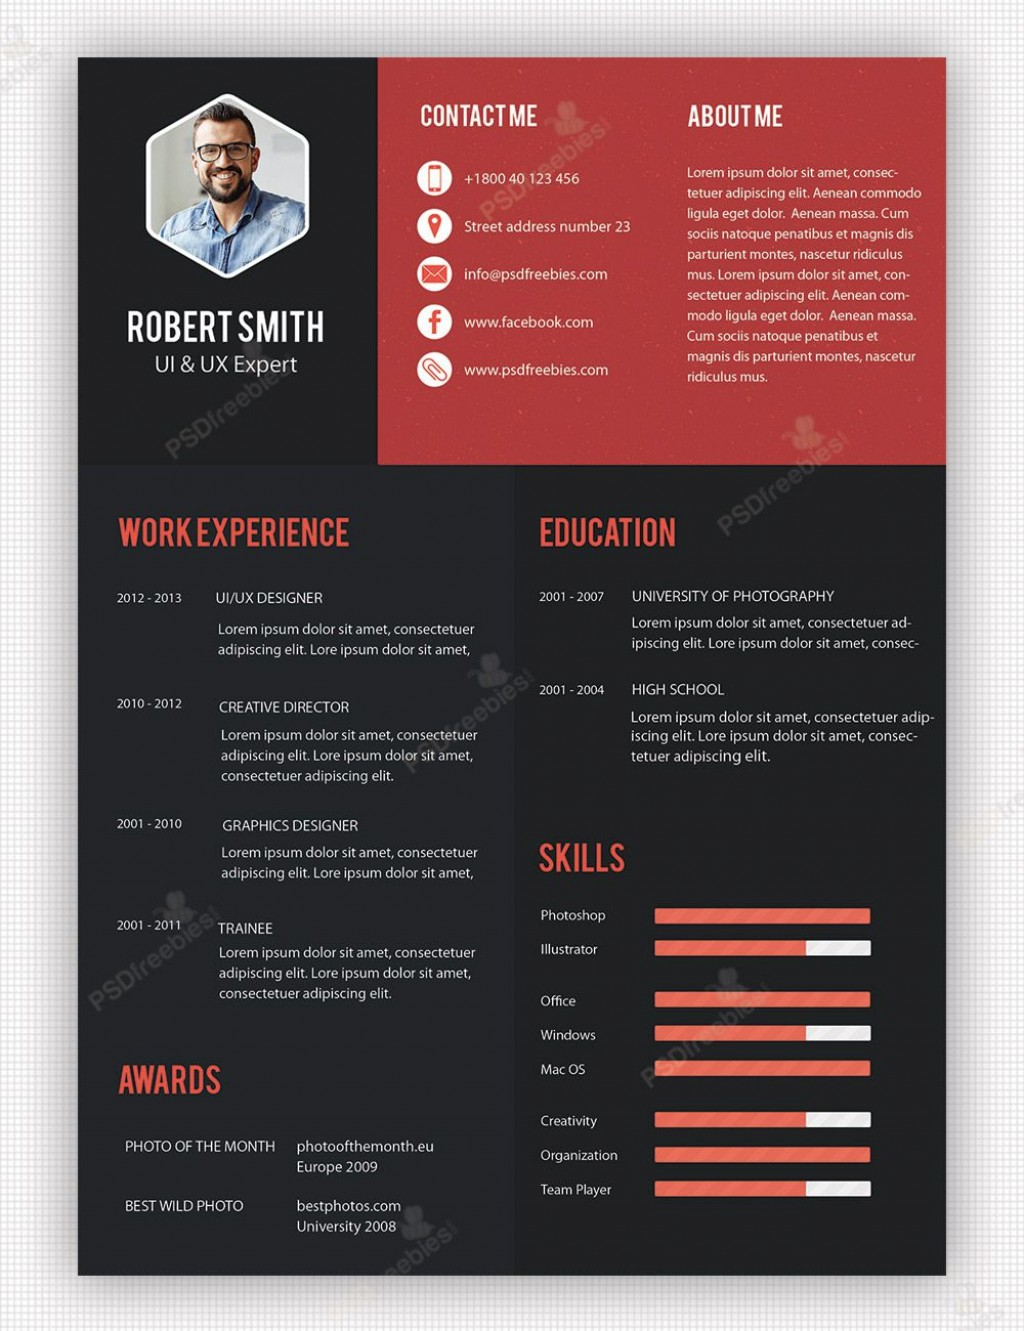 005 Marvelou Creative Cv Template Photoshop Free Picture Large